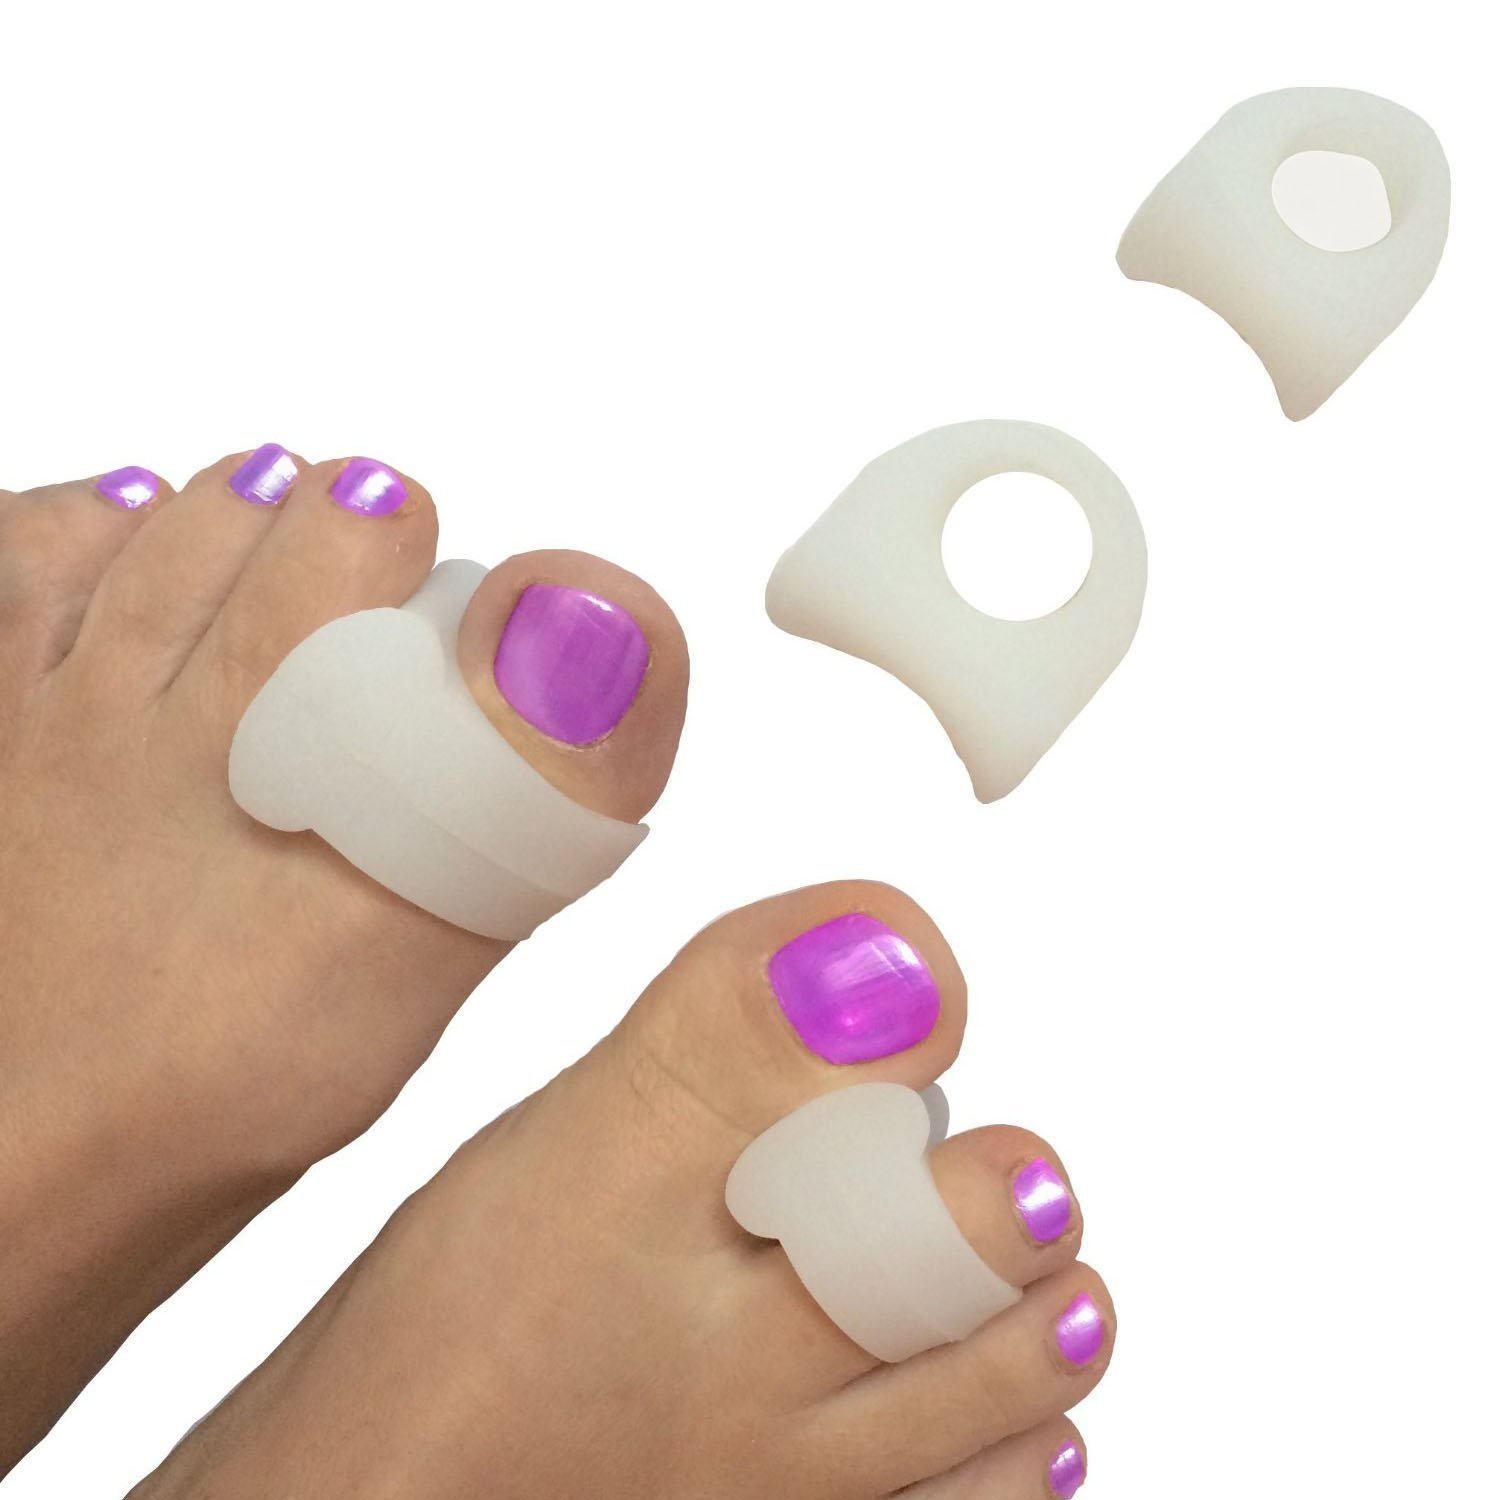 2 Pcs Toe Separator Soft Gel Hammer Claw Toe Pad Foot Care Cramp Hallux Valgus Hallux braces Foot Pain Relax Cushion  Z20401